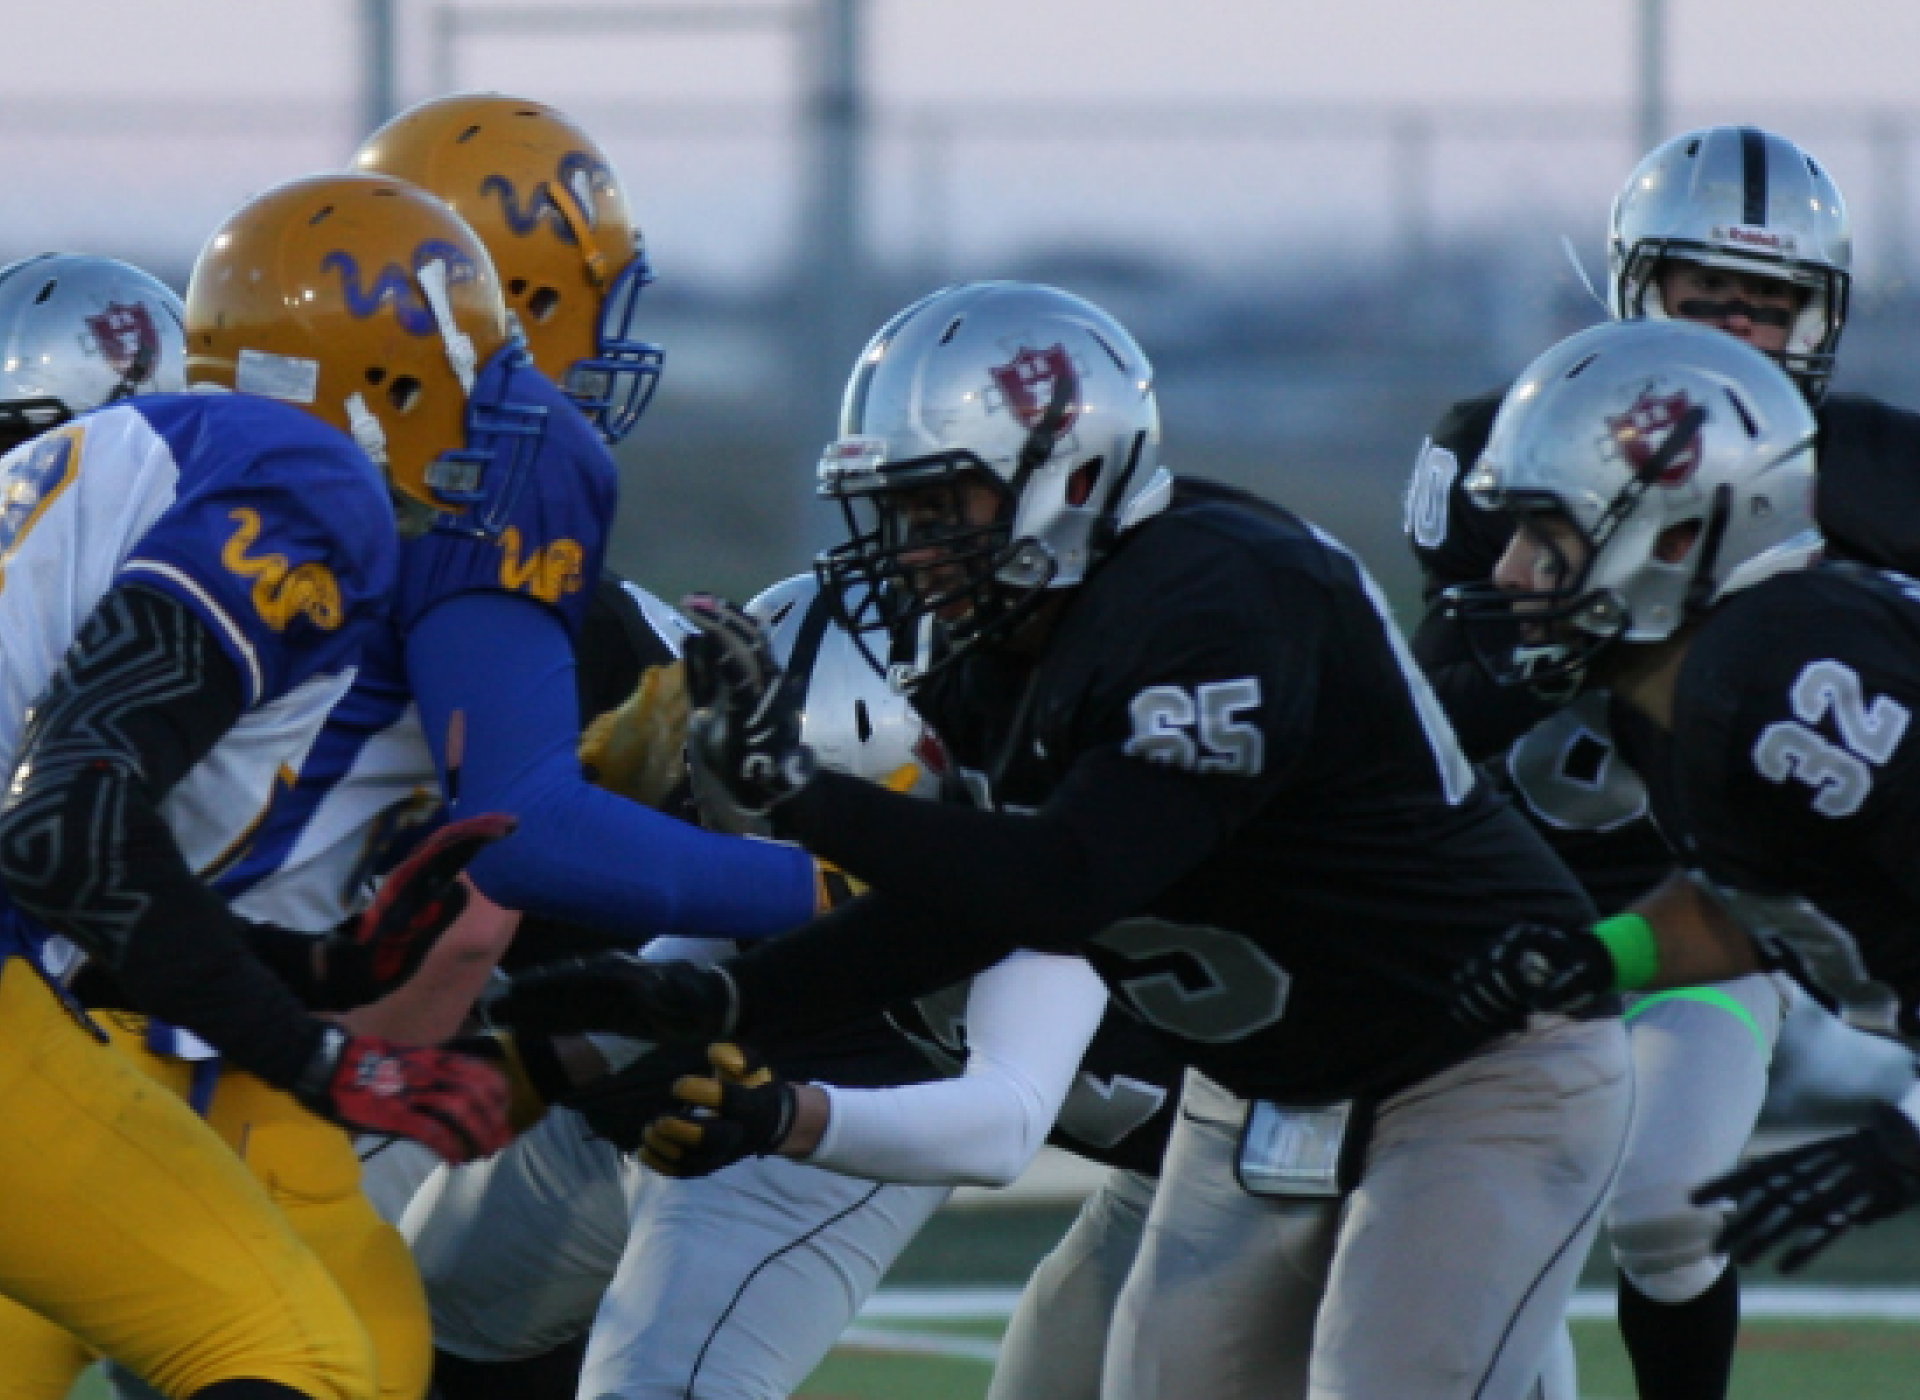 Football offensive and defensive linemen engage at the beginning of a play. The quarterback receives the snap.